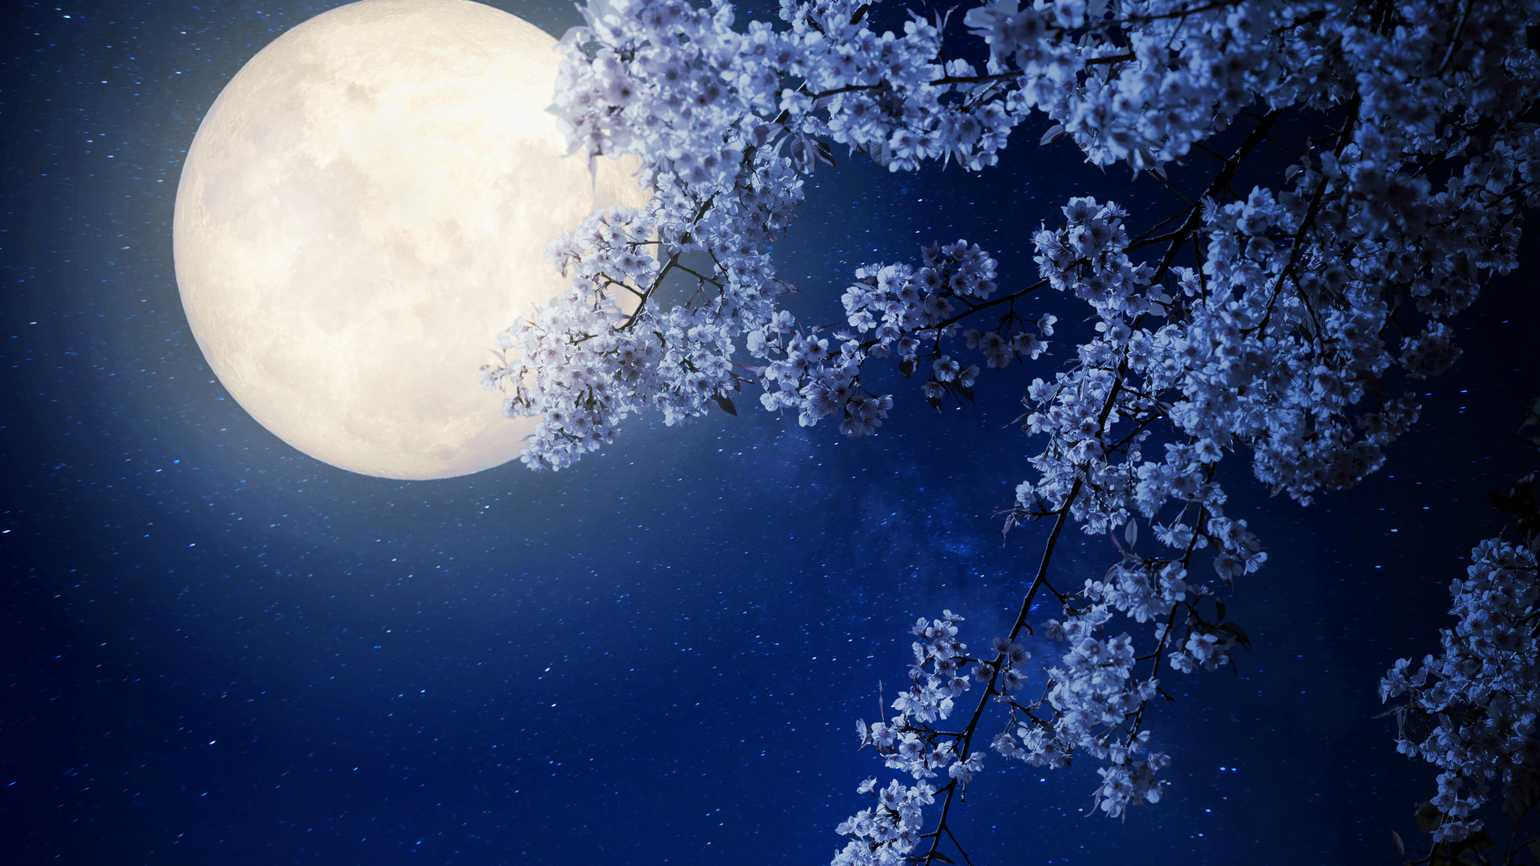 The heaven sent moon flower guideposts beautiful cherry blossom sakura flowers with milky way star in night skies full izmirmasajfo